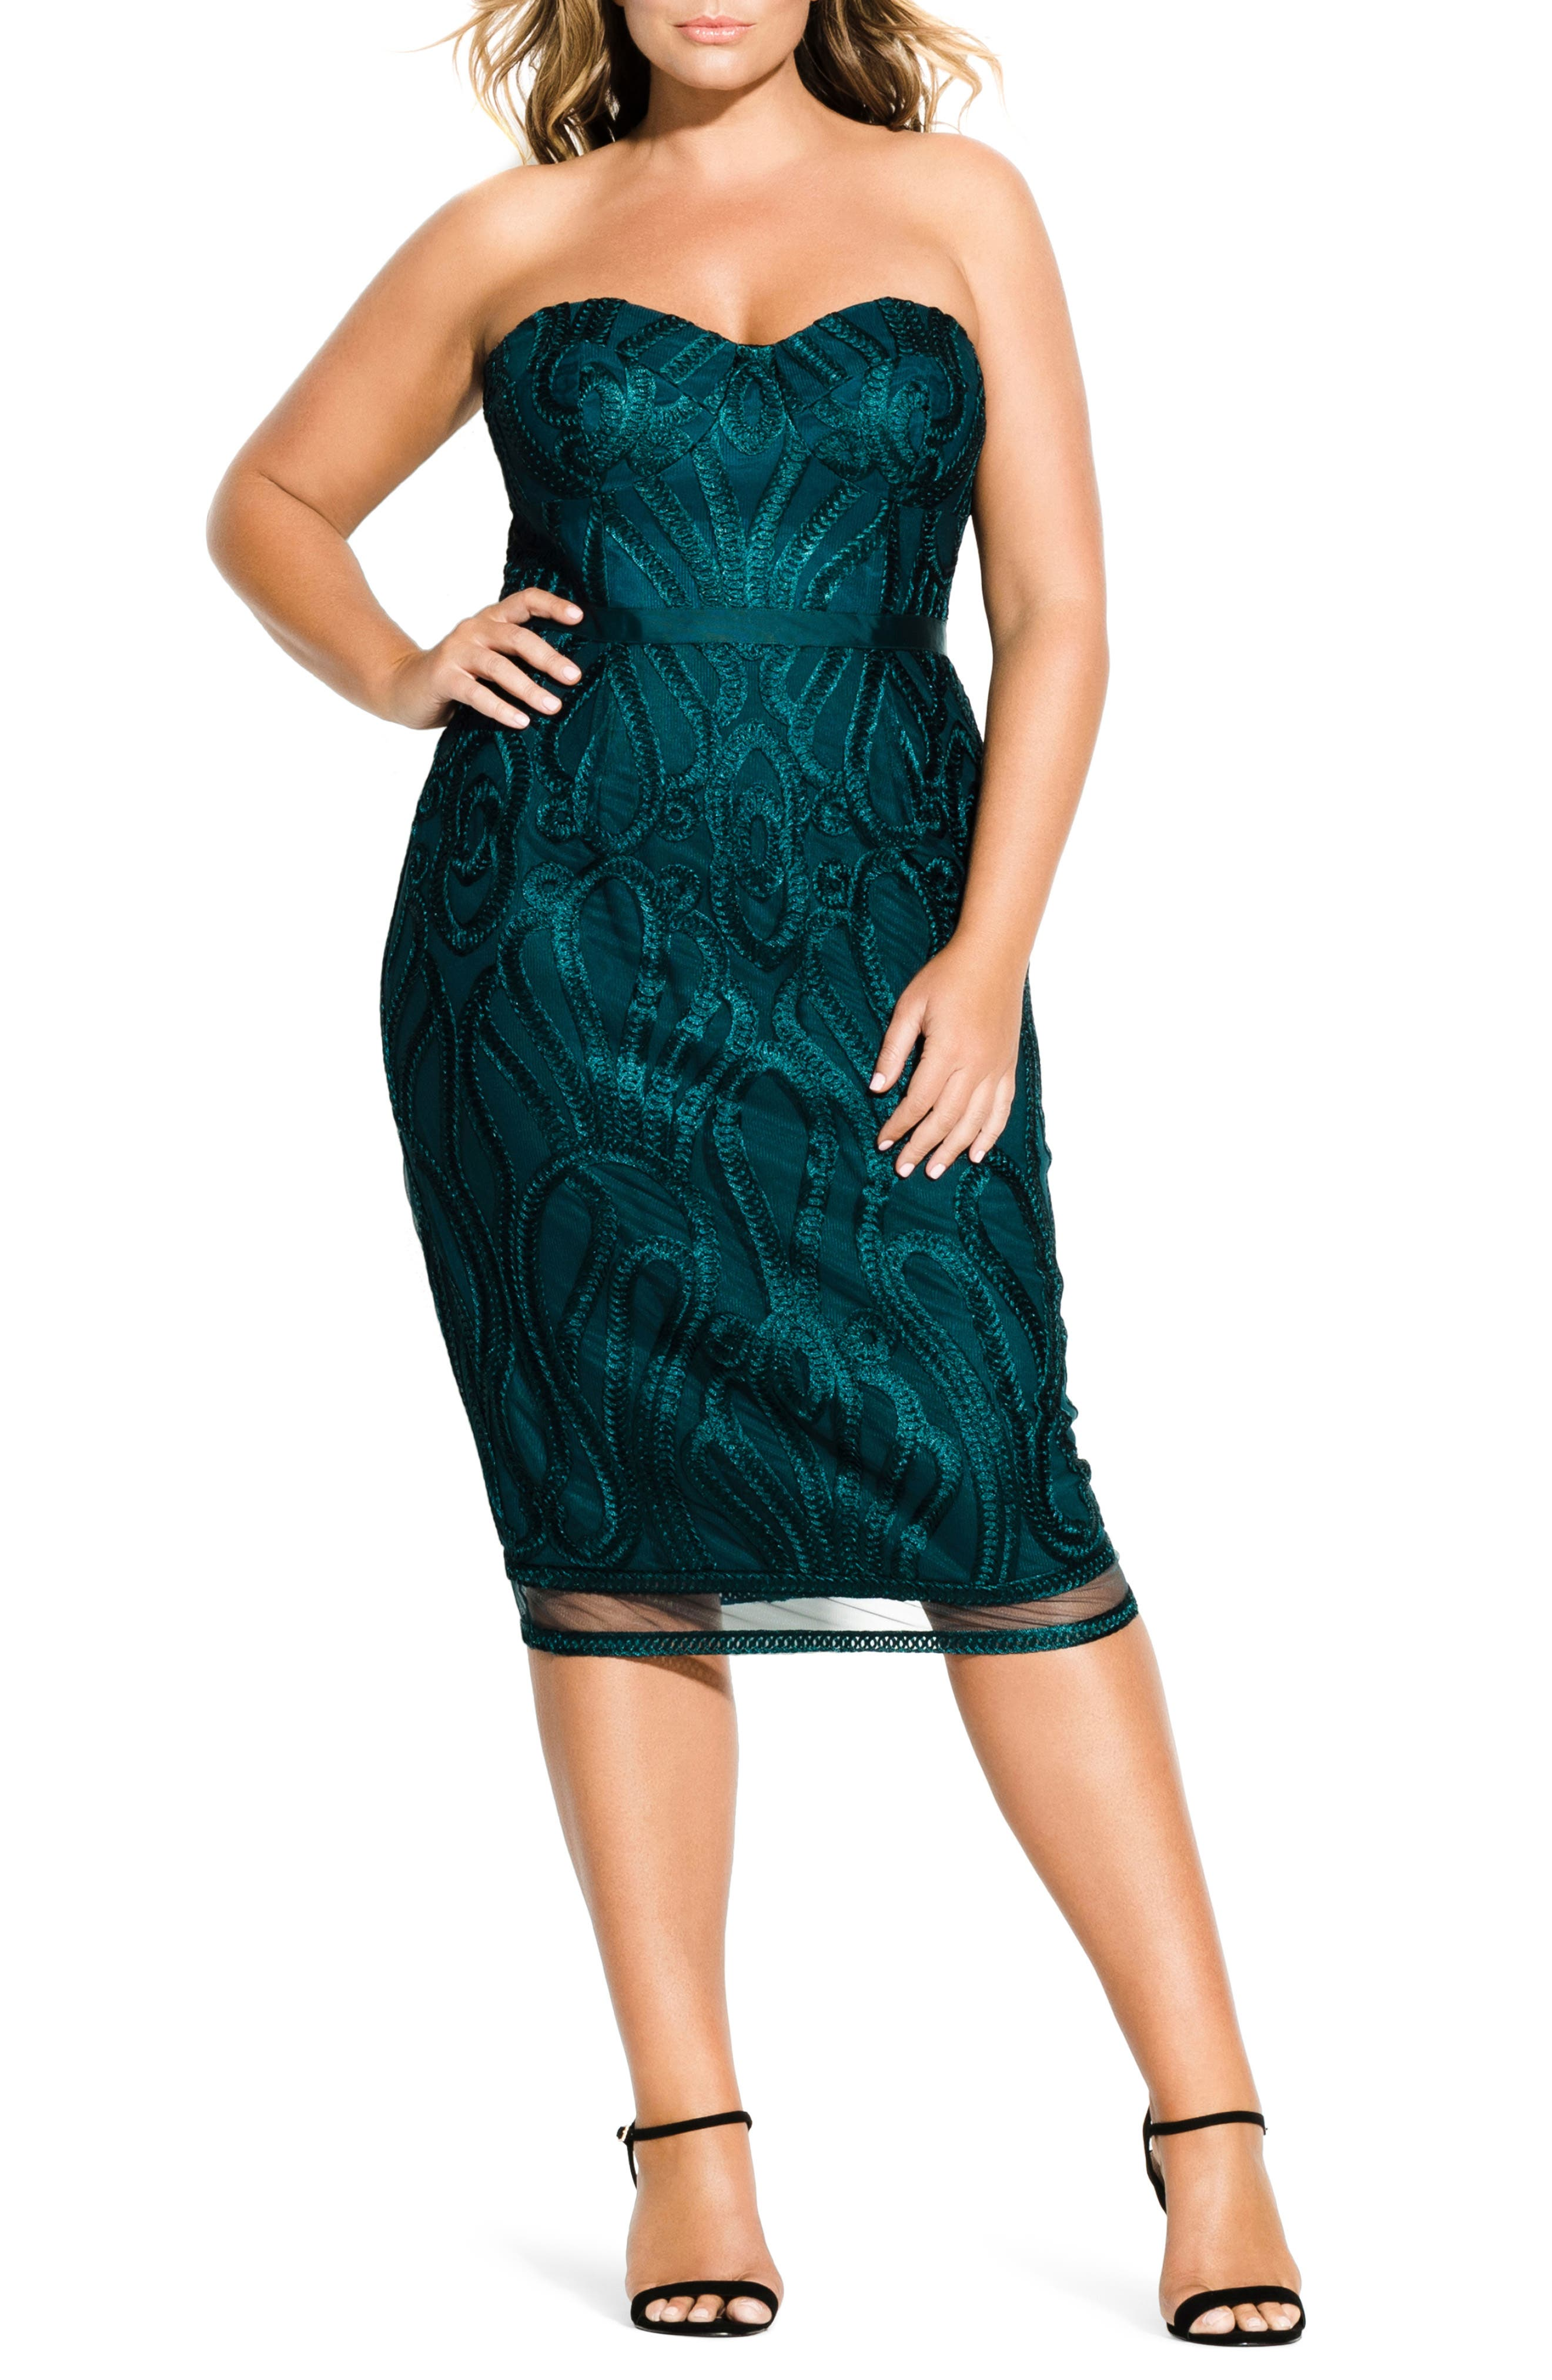 CITY CHIC, Antonia Strapless Sheath Dress, Main thumbnail 1, color, EMERALD